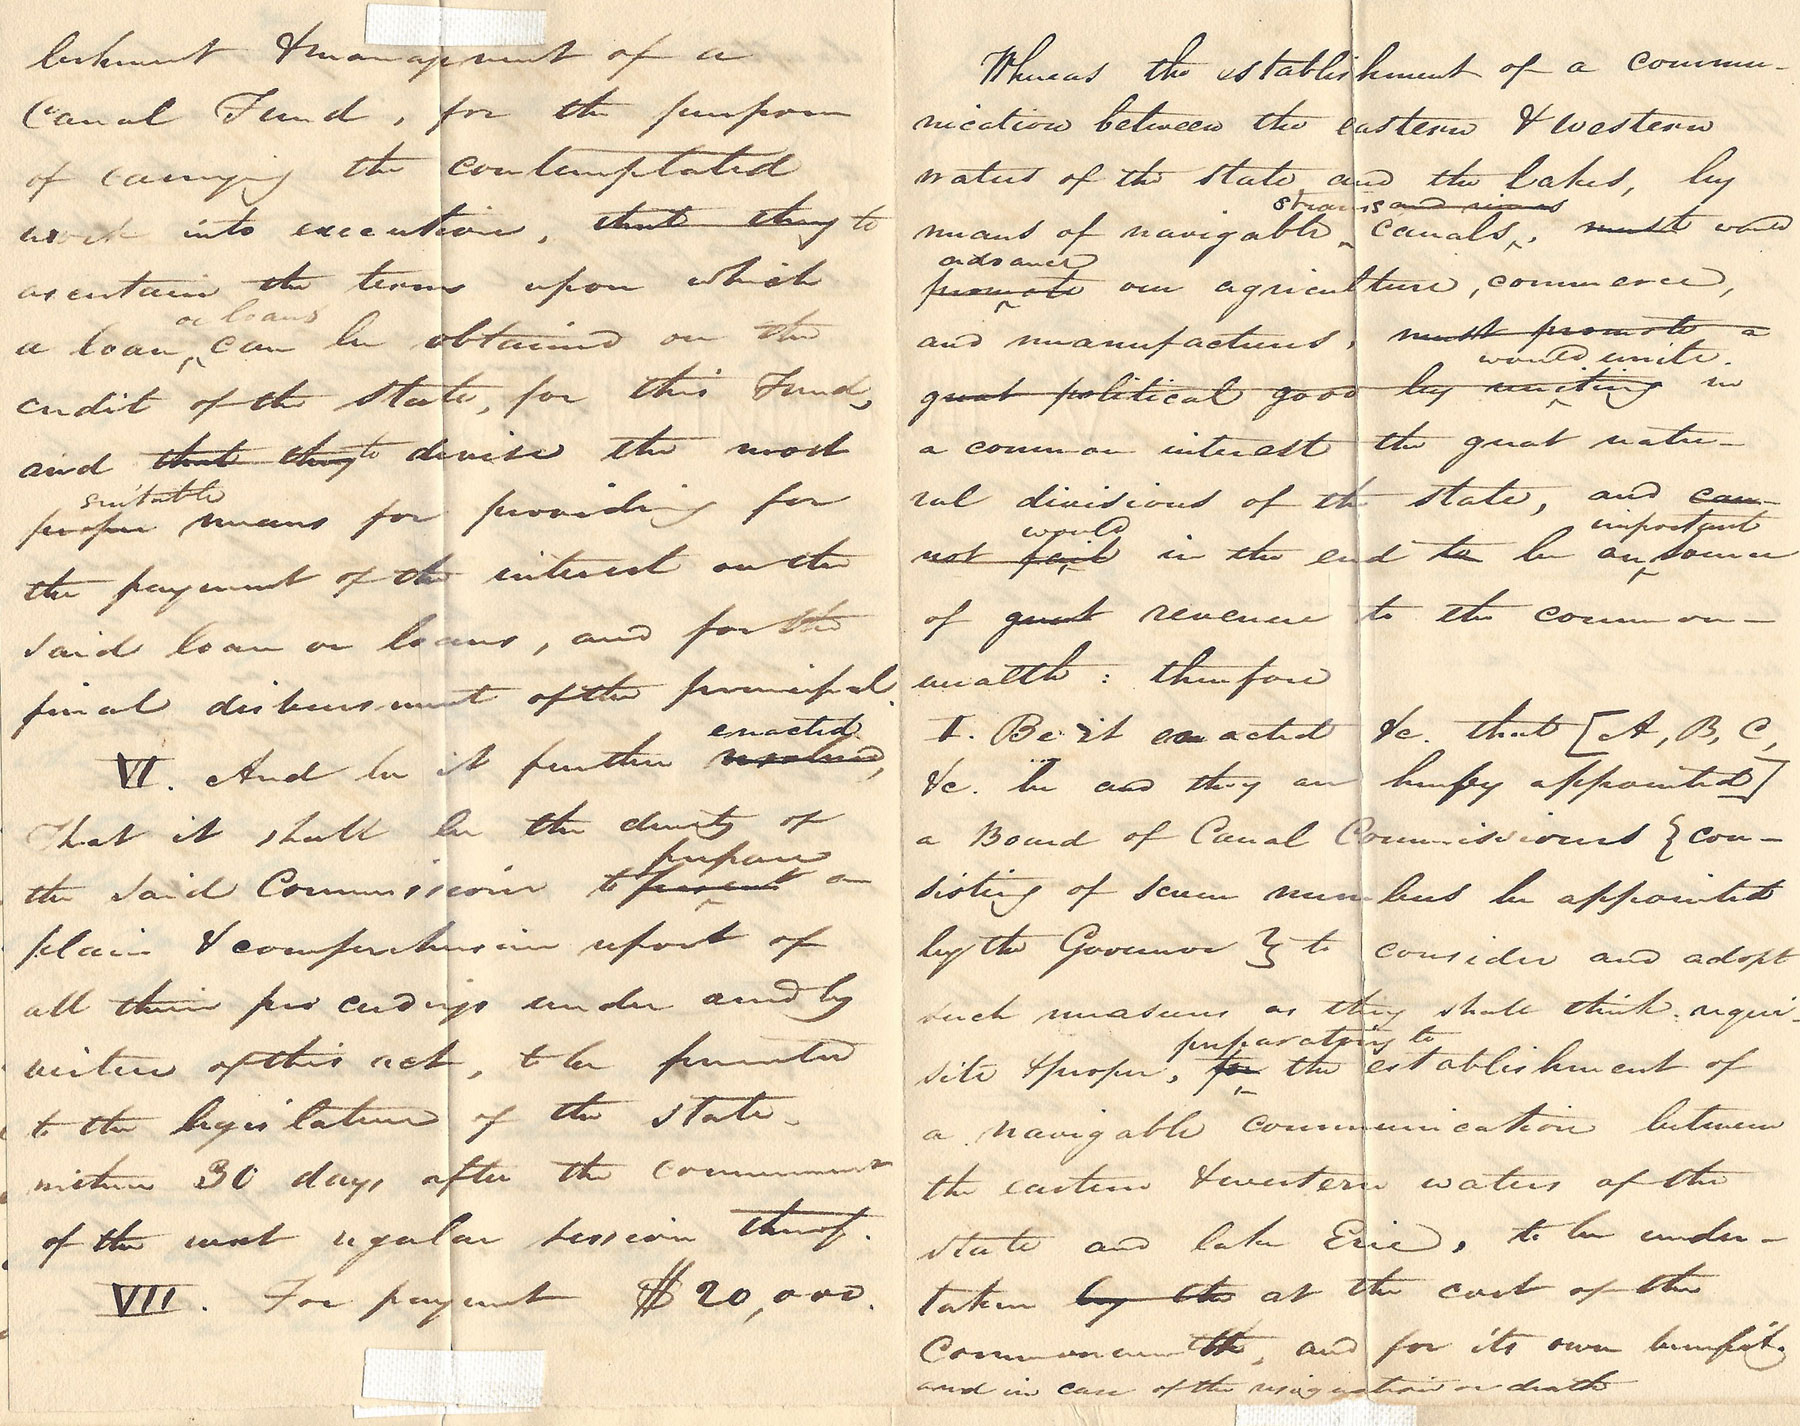 Authentic Document from the Canal Era: Pennsylvania, Seeing the Tremendous Success of New York's Erie Canal, Will Rise to the Occasion and Build Canals